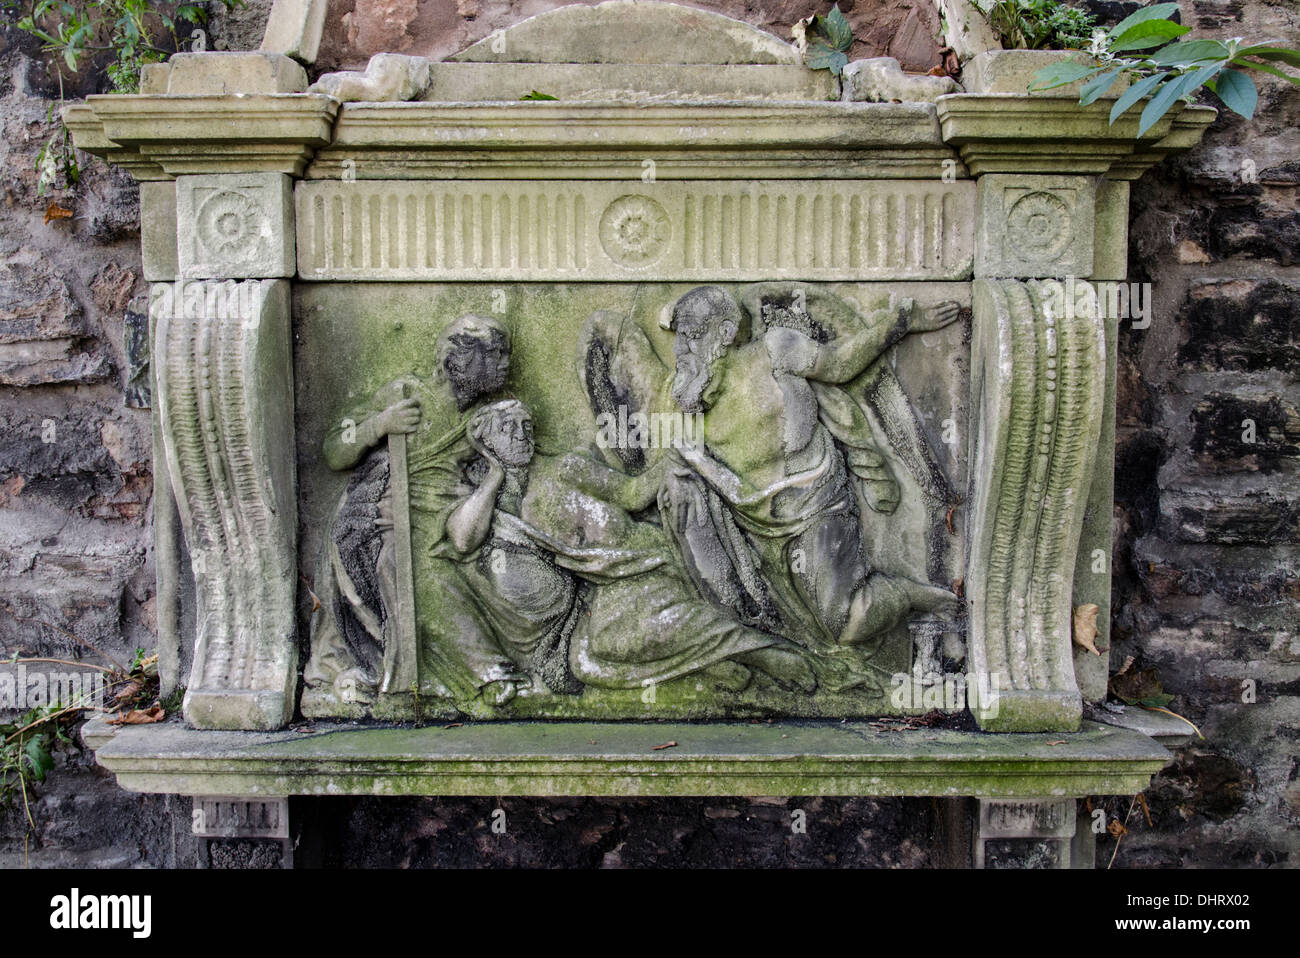 A badly weathered monument in Old Calton Burial Ground, Edinburgh, Scotland, UK. Stock Photo